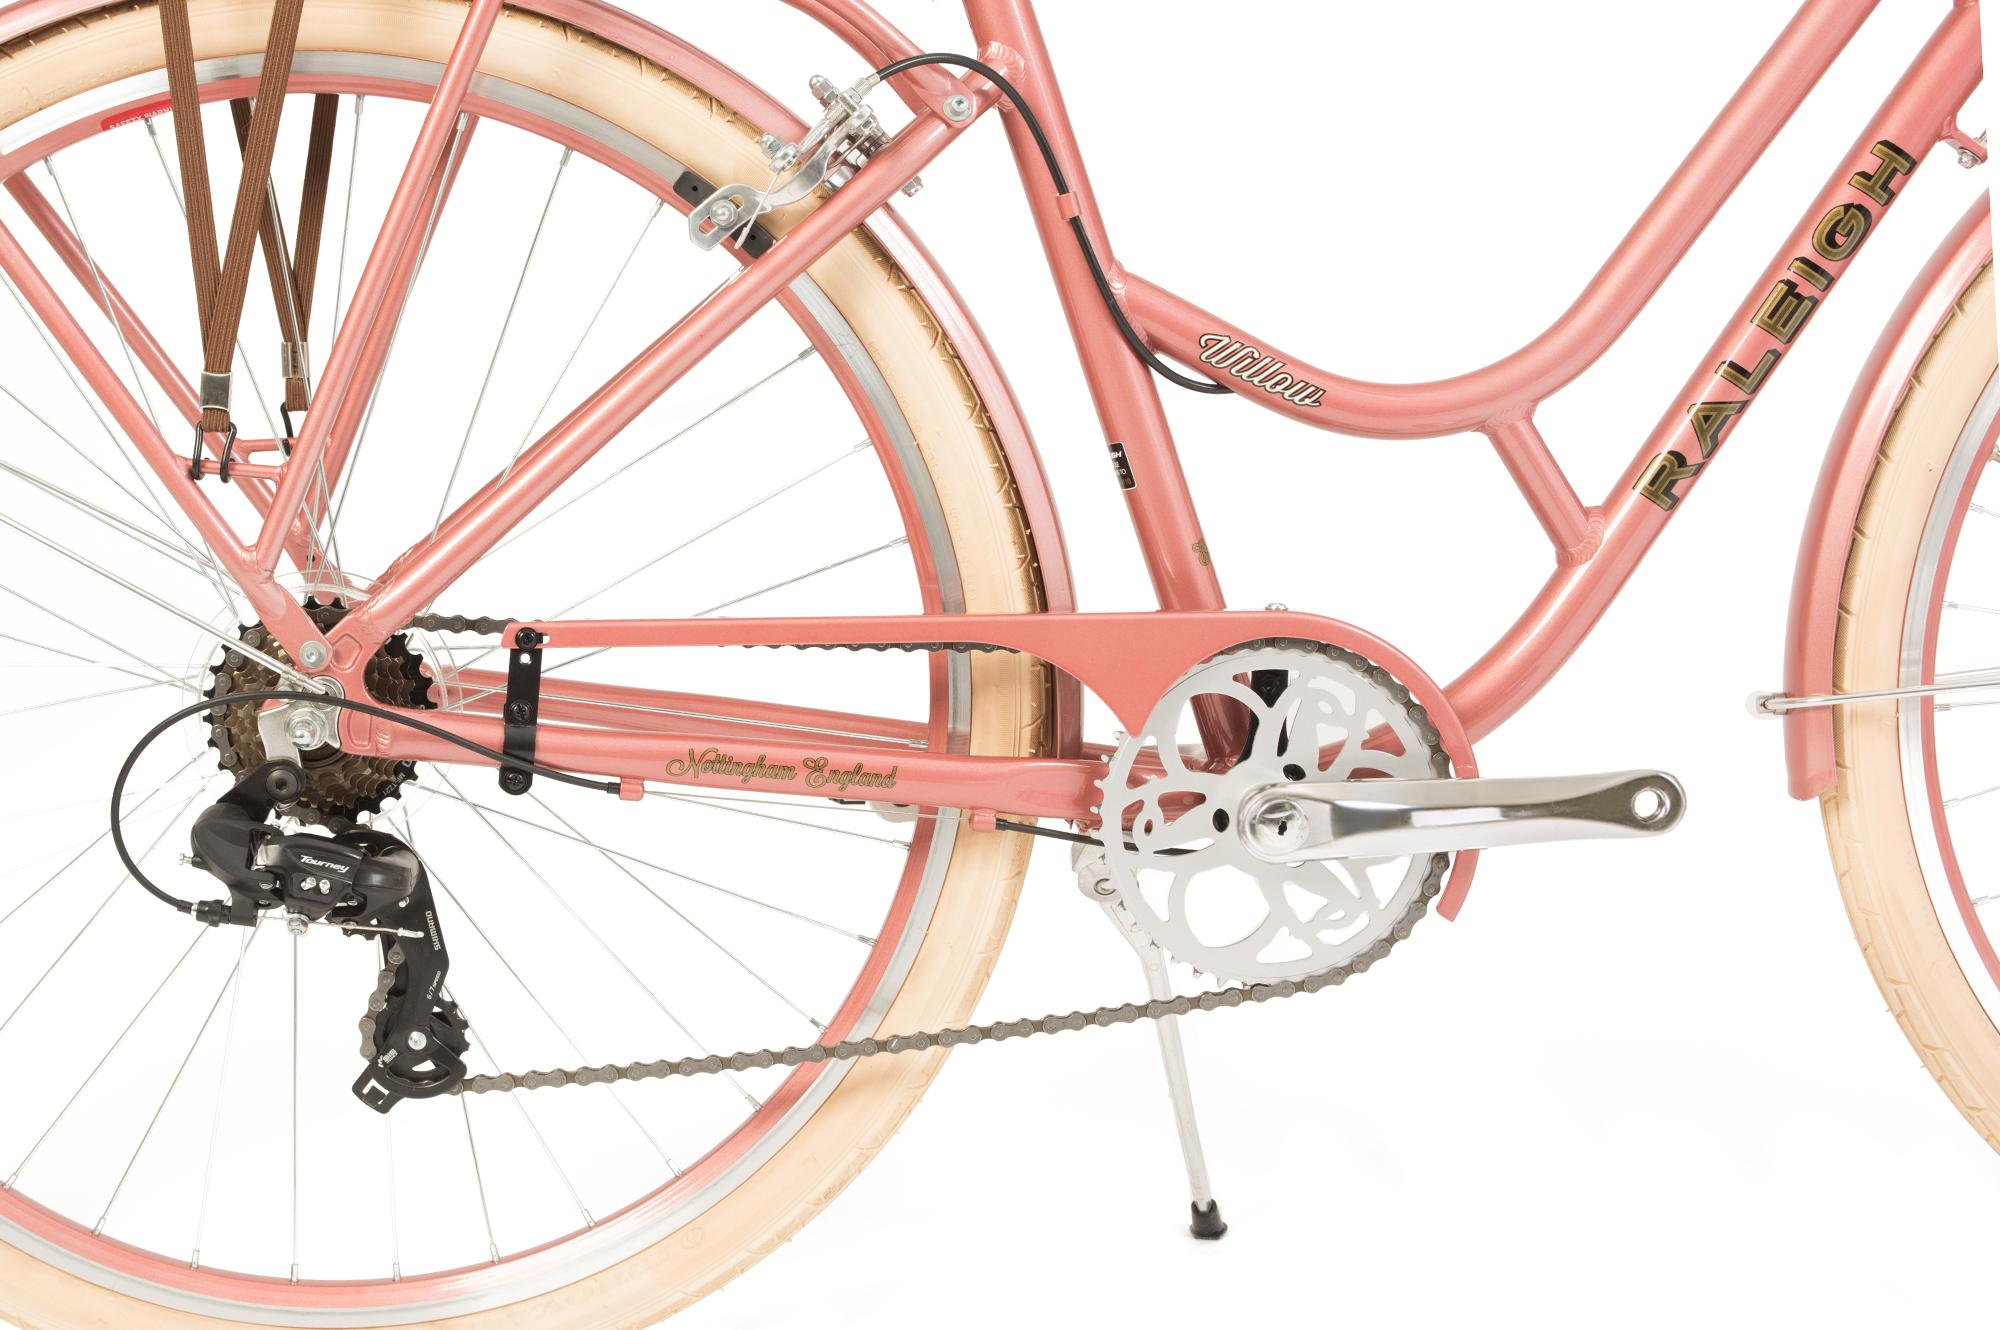 Chain guard and derailleur on the Raleigh Willow classic low step ladies bike in colour pink